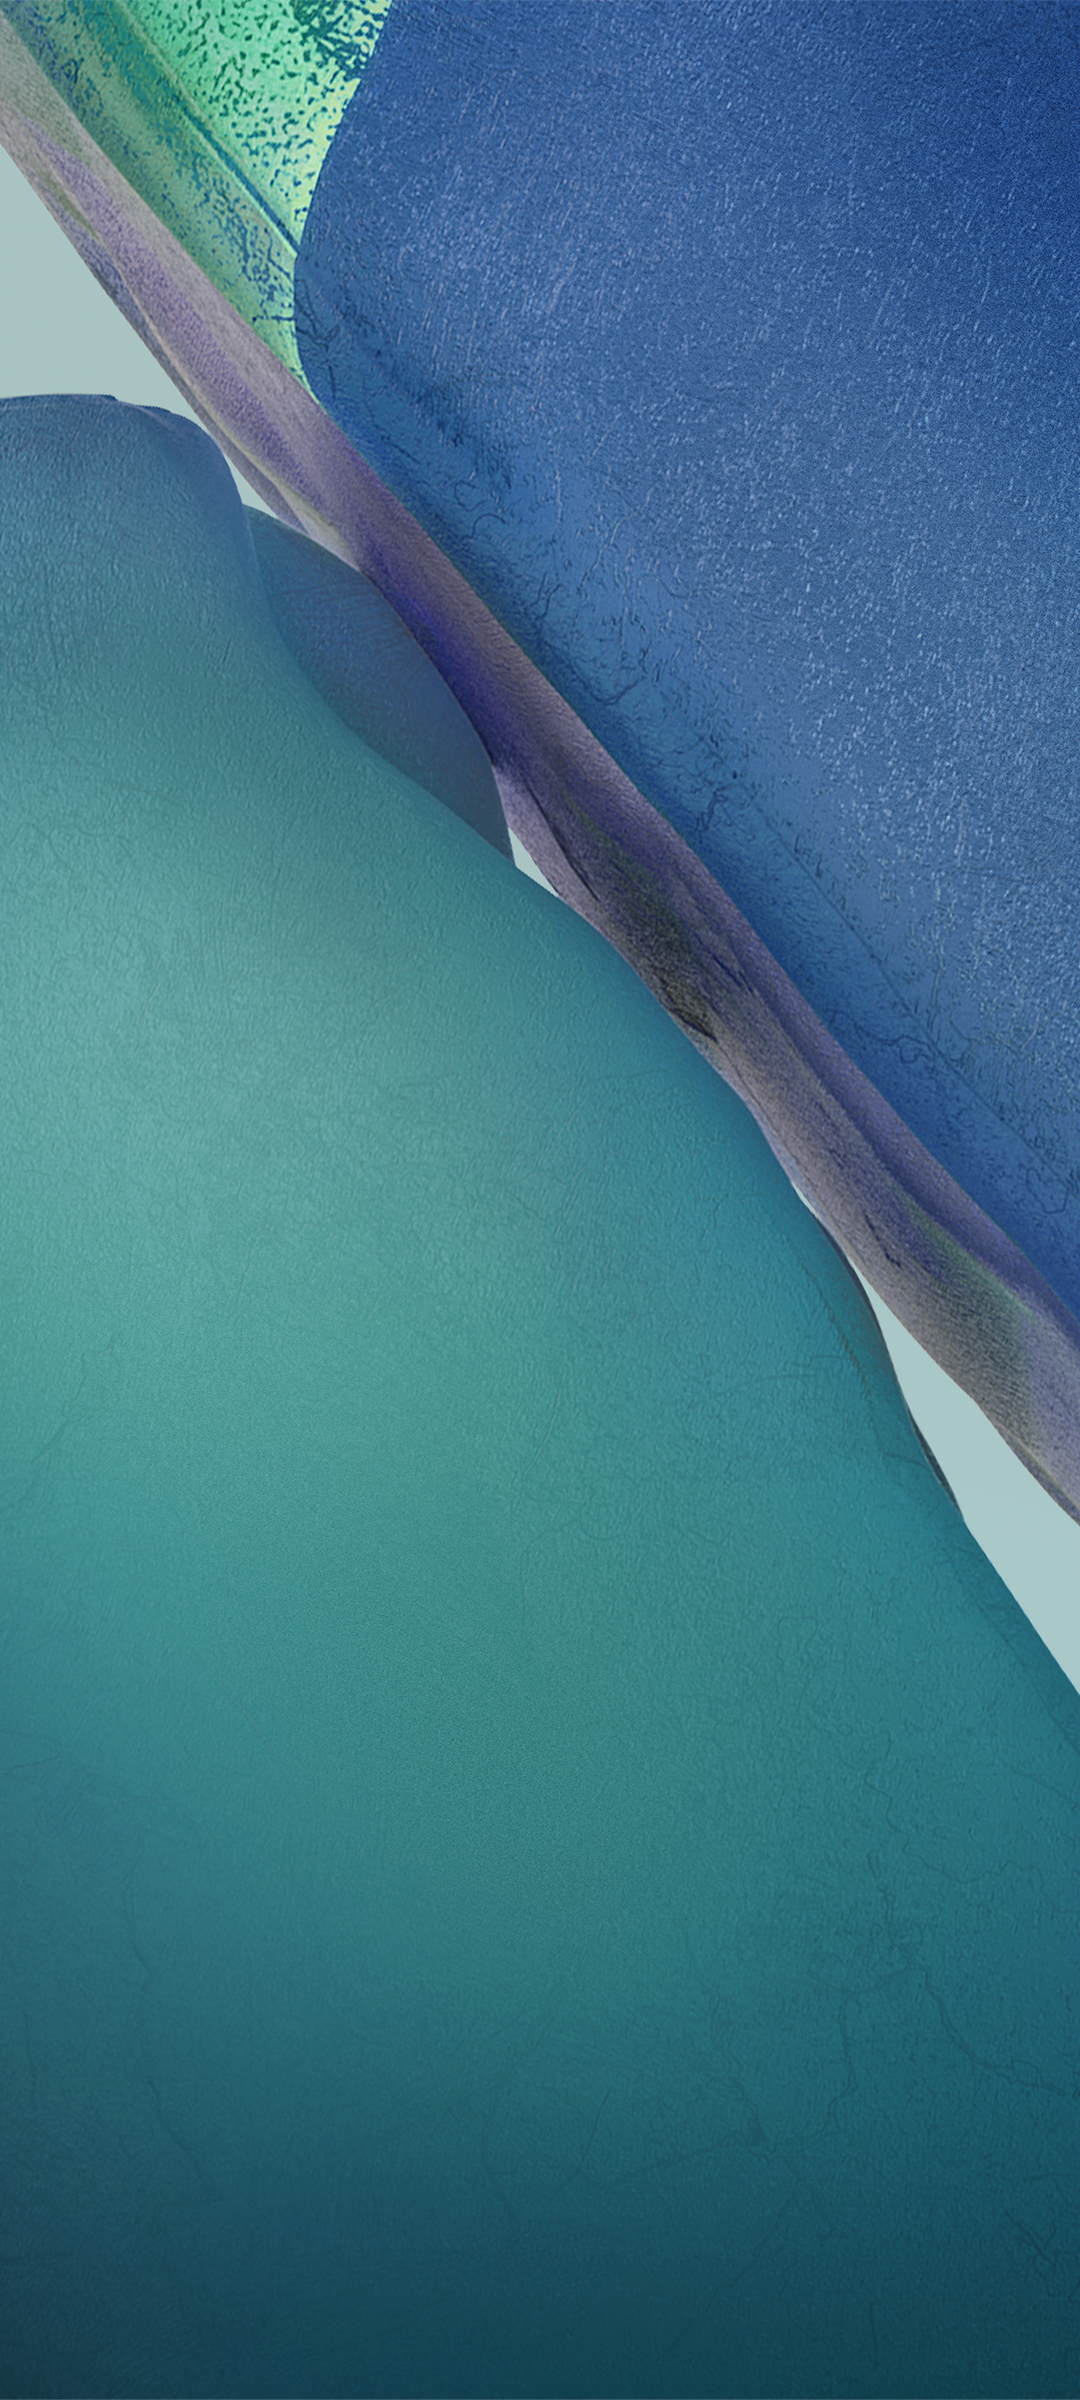 Samsung Galaxy Note 20 Wallpaper (YTECHB Exclusive) in